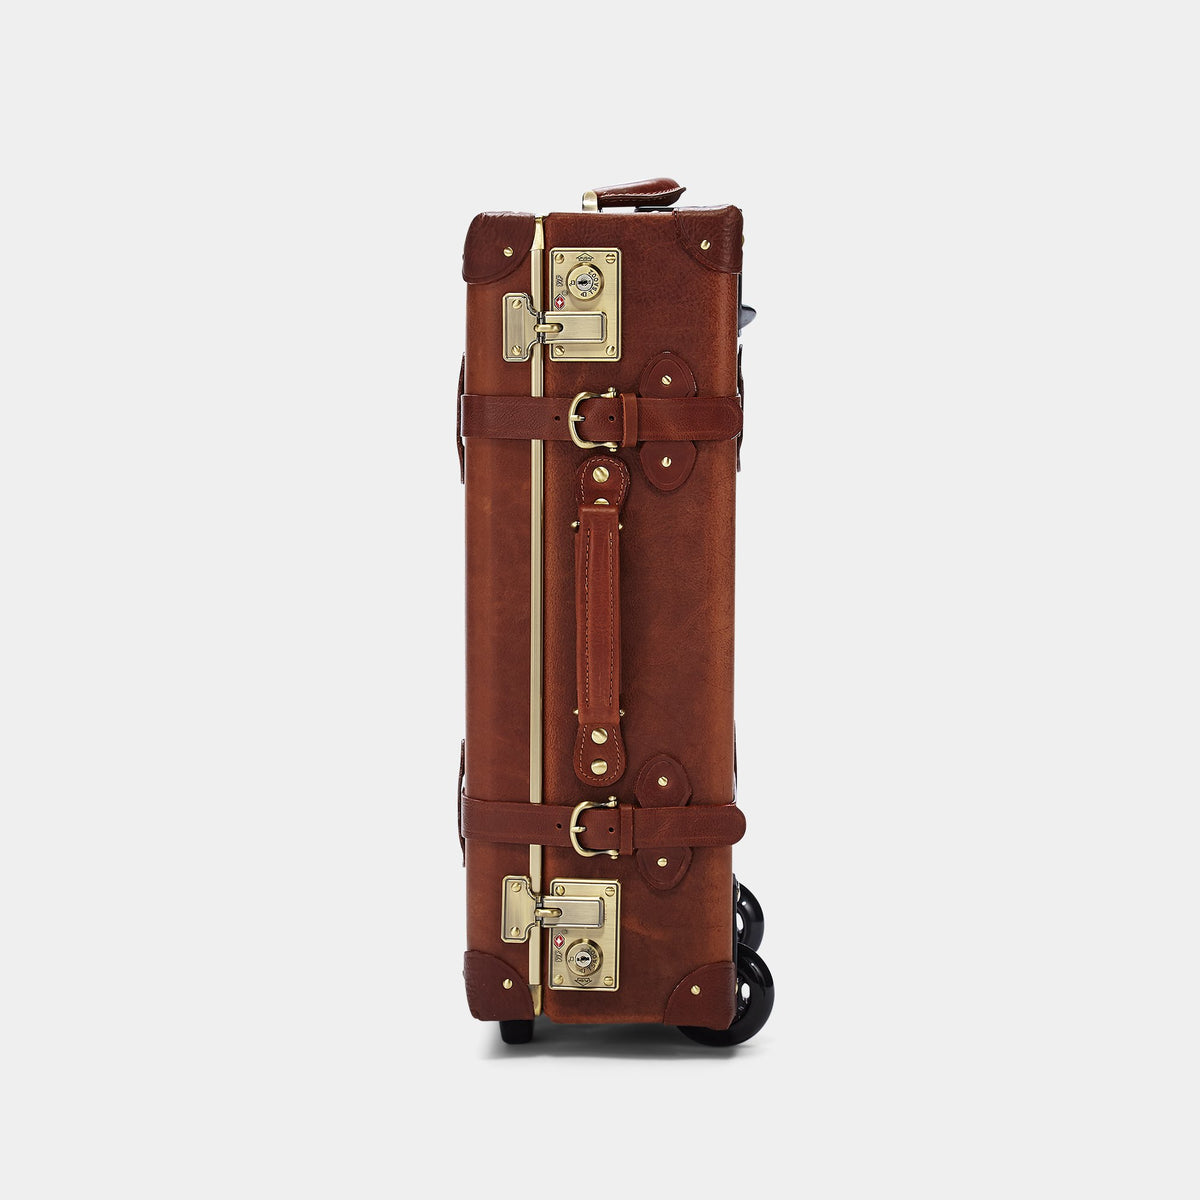 The Pioneer Carryon - Vintage Style leather suitcase - Exterior Front Side